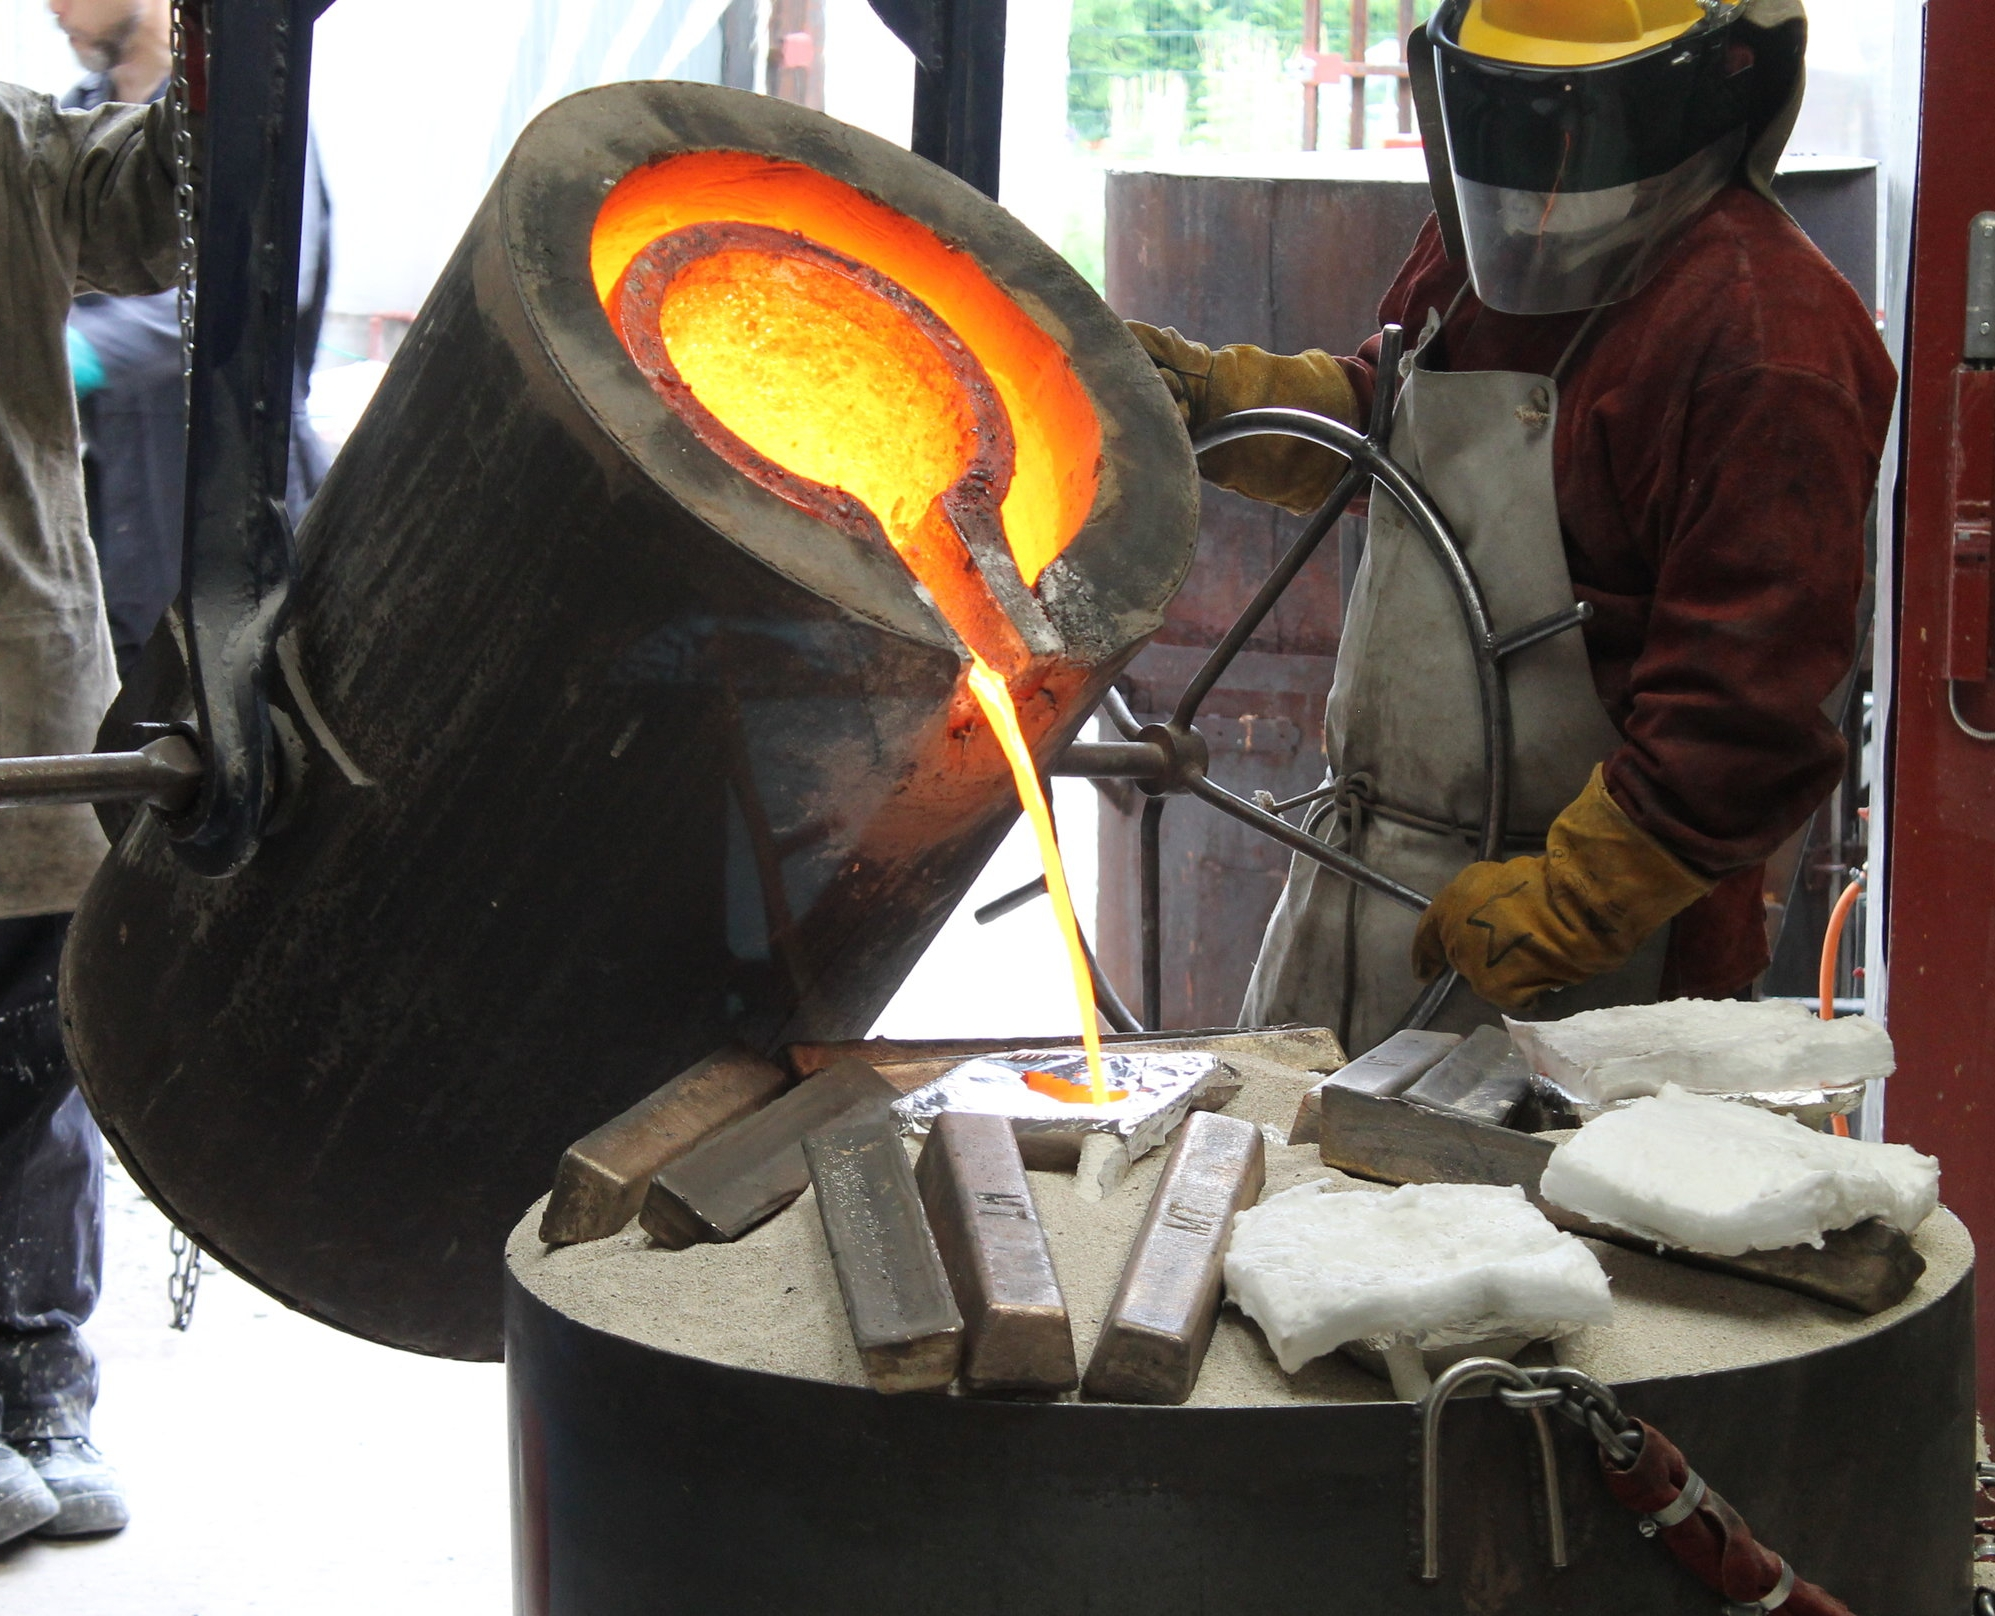 Molten bronze being poured into ceramic casts